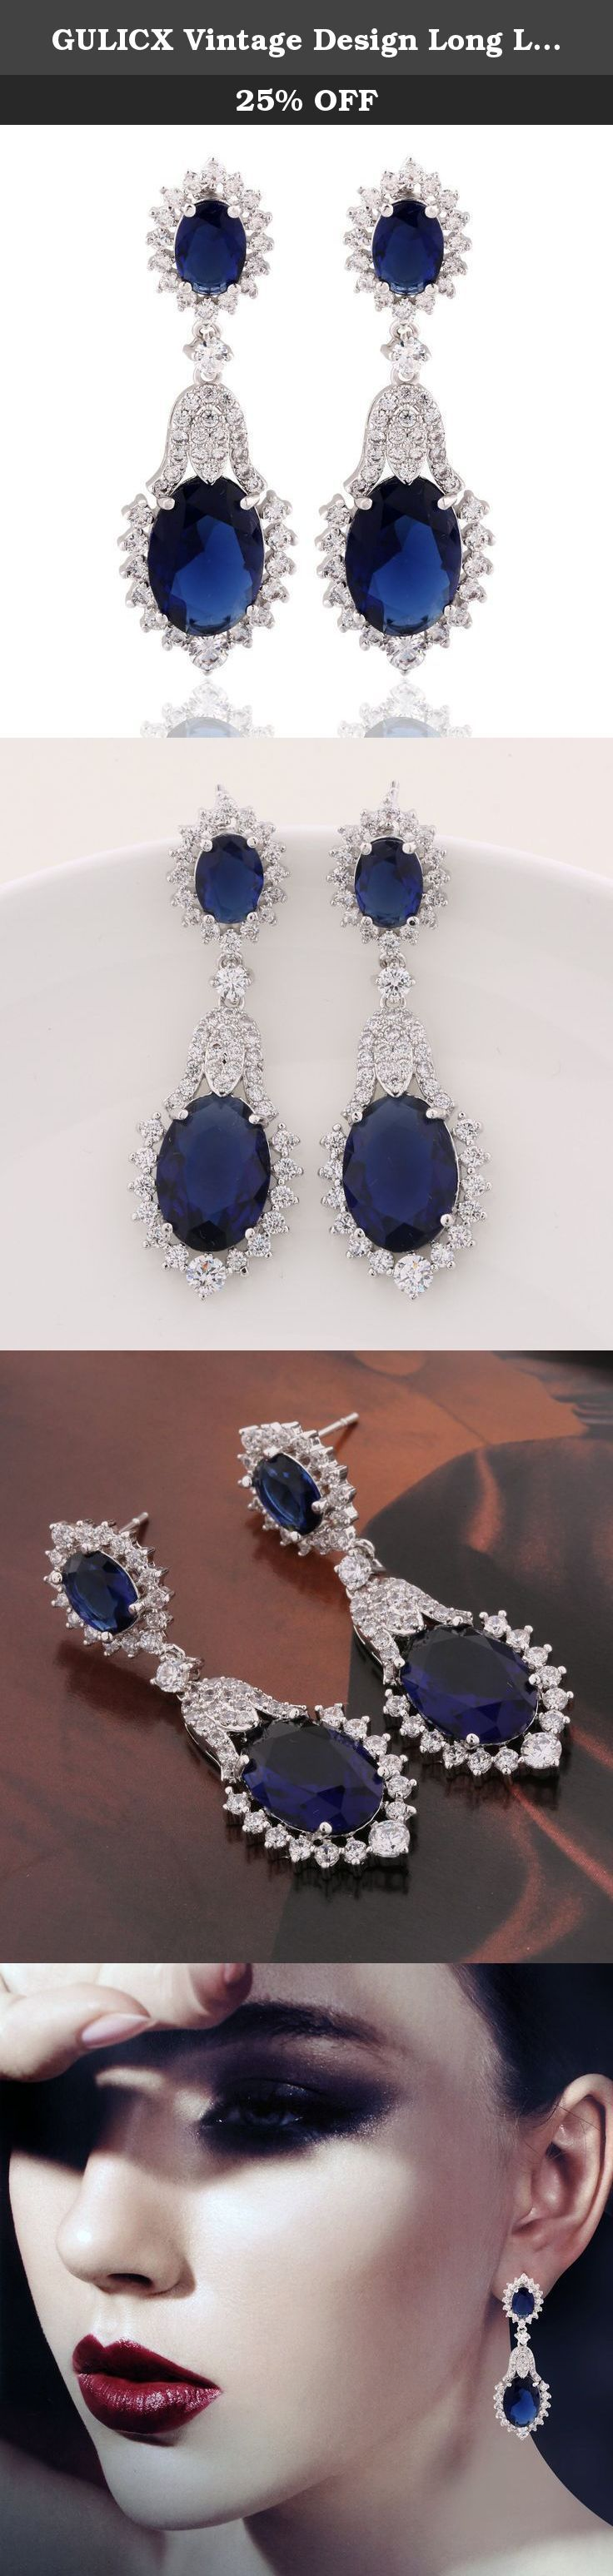 GULICX Vintage Design Long Luxury Oval CZ Stone Silver Tone Blue Sapphire Color Drop Earrings. Glimmering fashionable dangle earrings. Suitable for wedding, party, prom, anniversary, engagement day and daily wear.